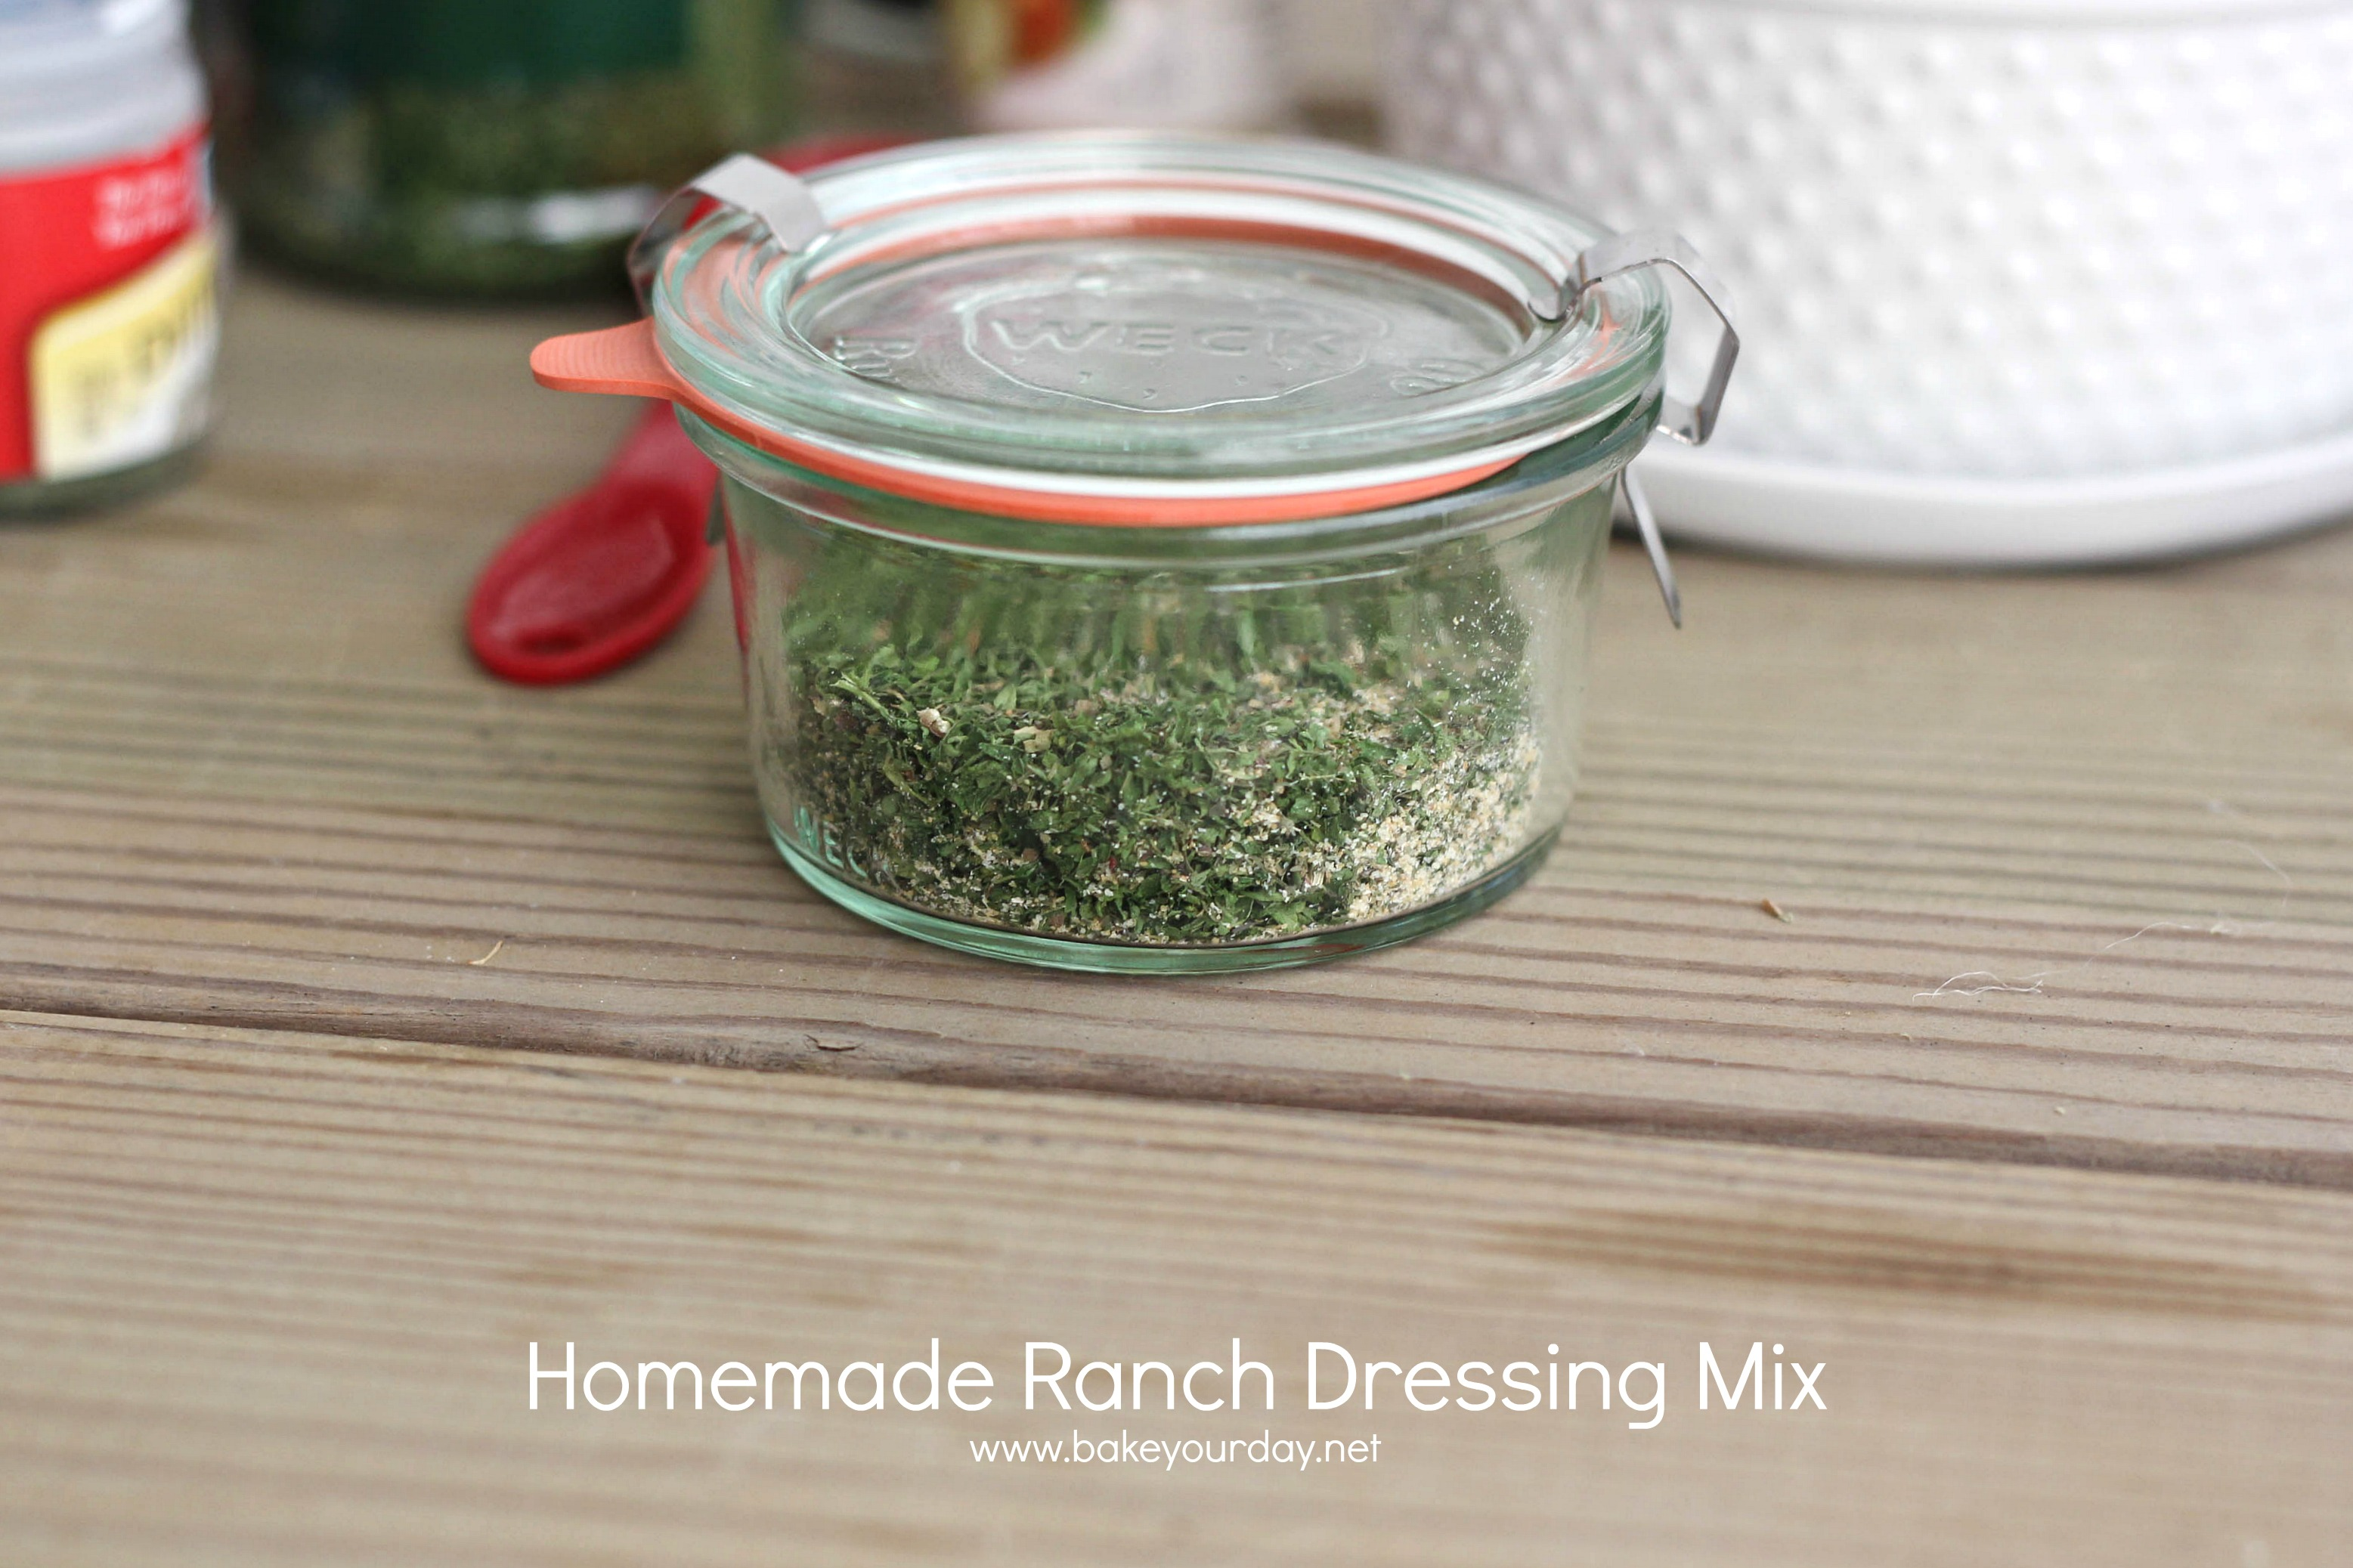 homemade-ranch-dressing-mix-15labeled.jpg